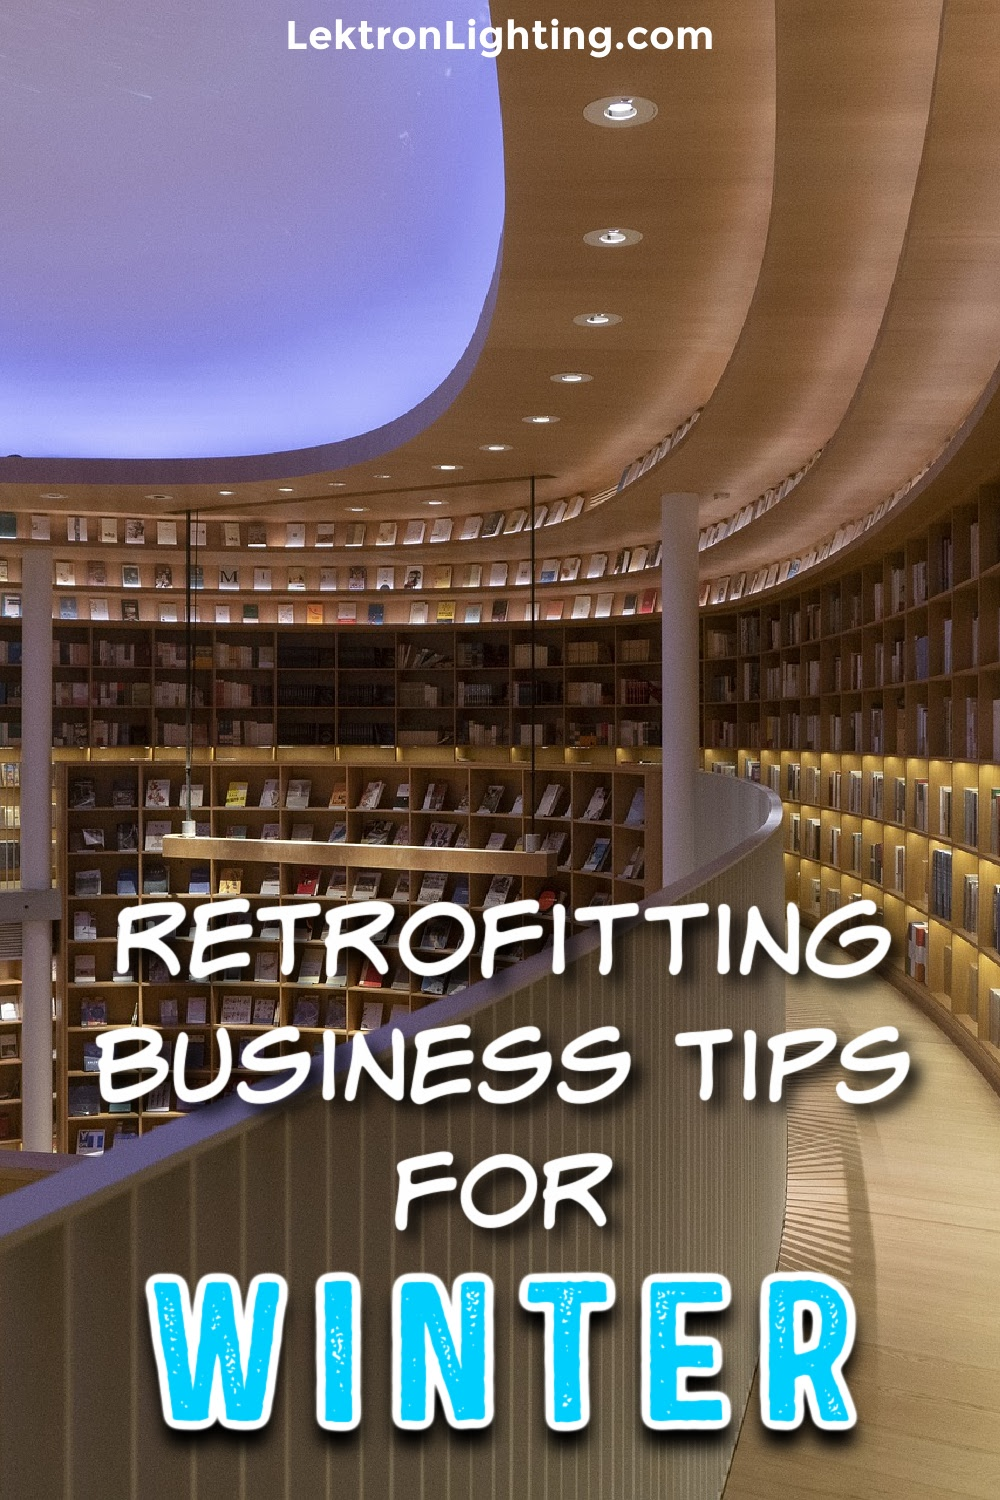 Winter retrofitting tips for business can help make sure you do not get in over your head during the worst time of year to be in over your head.